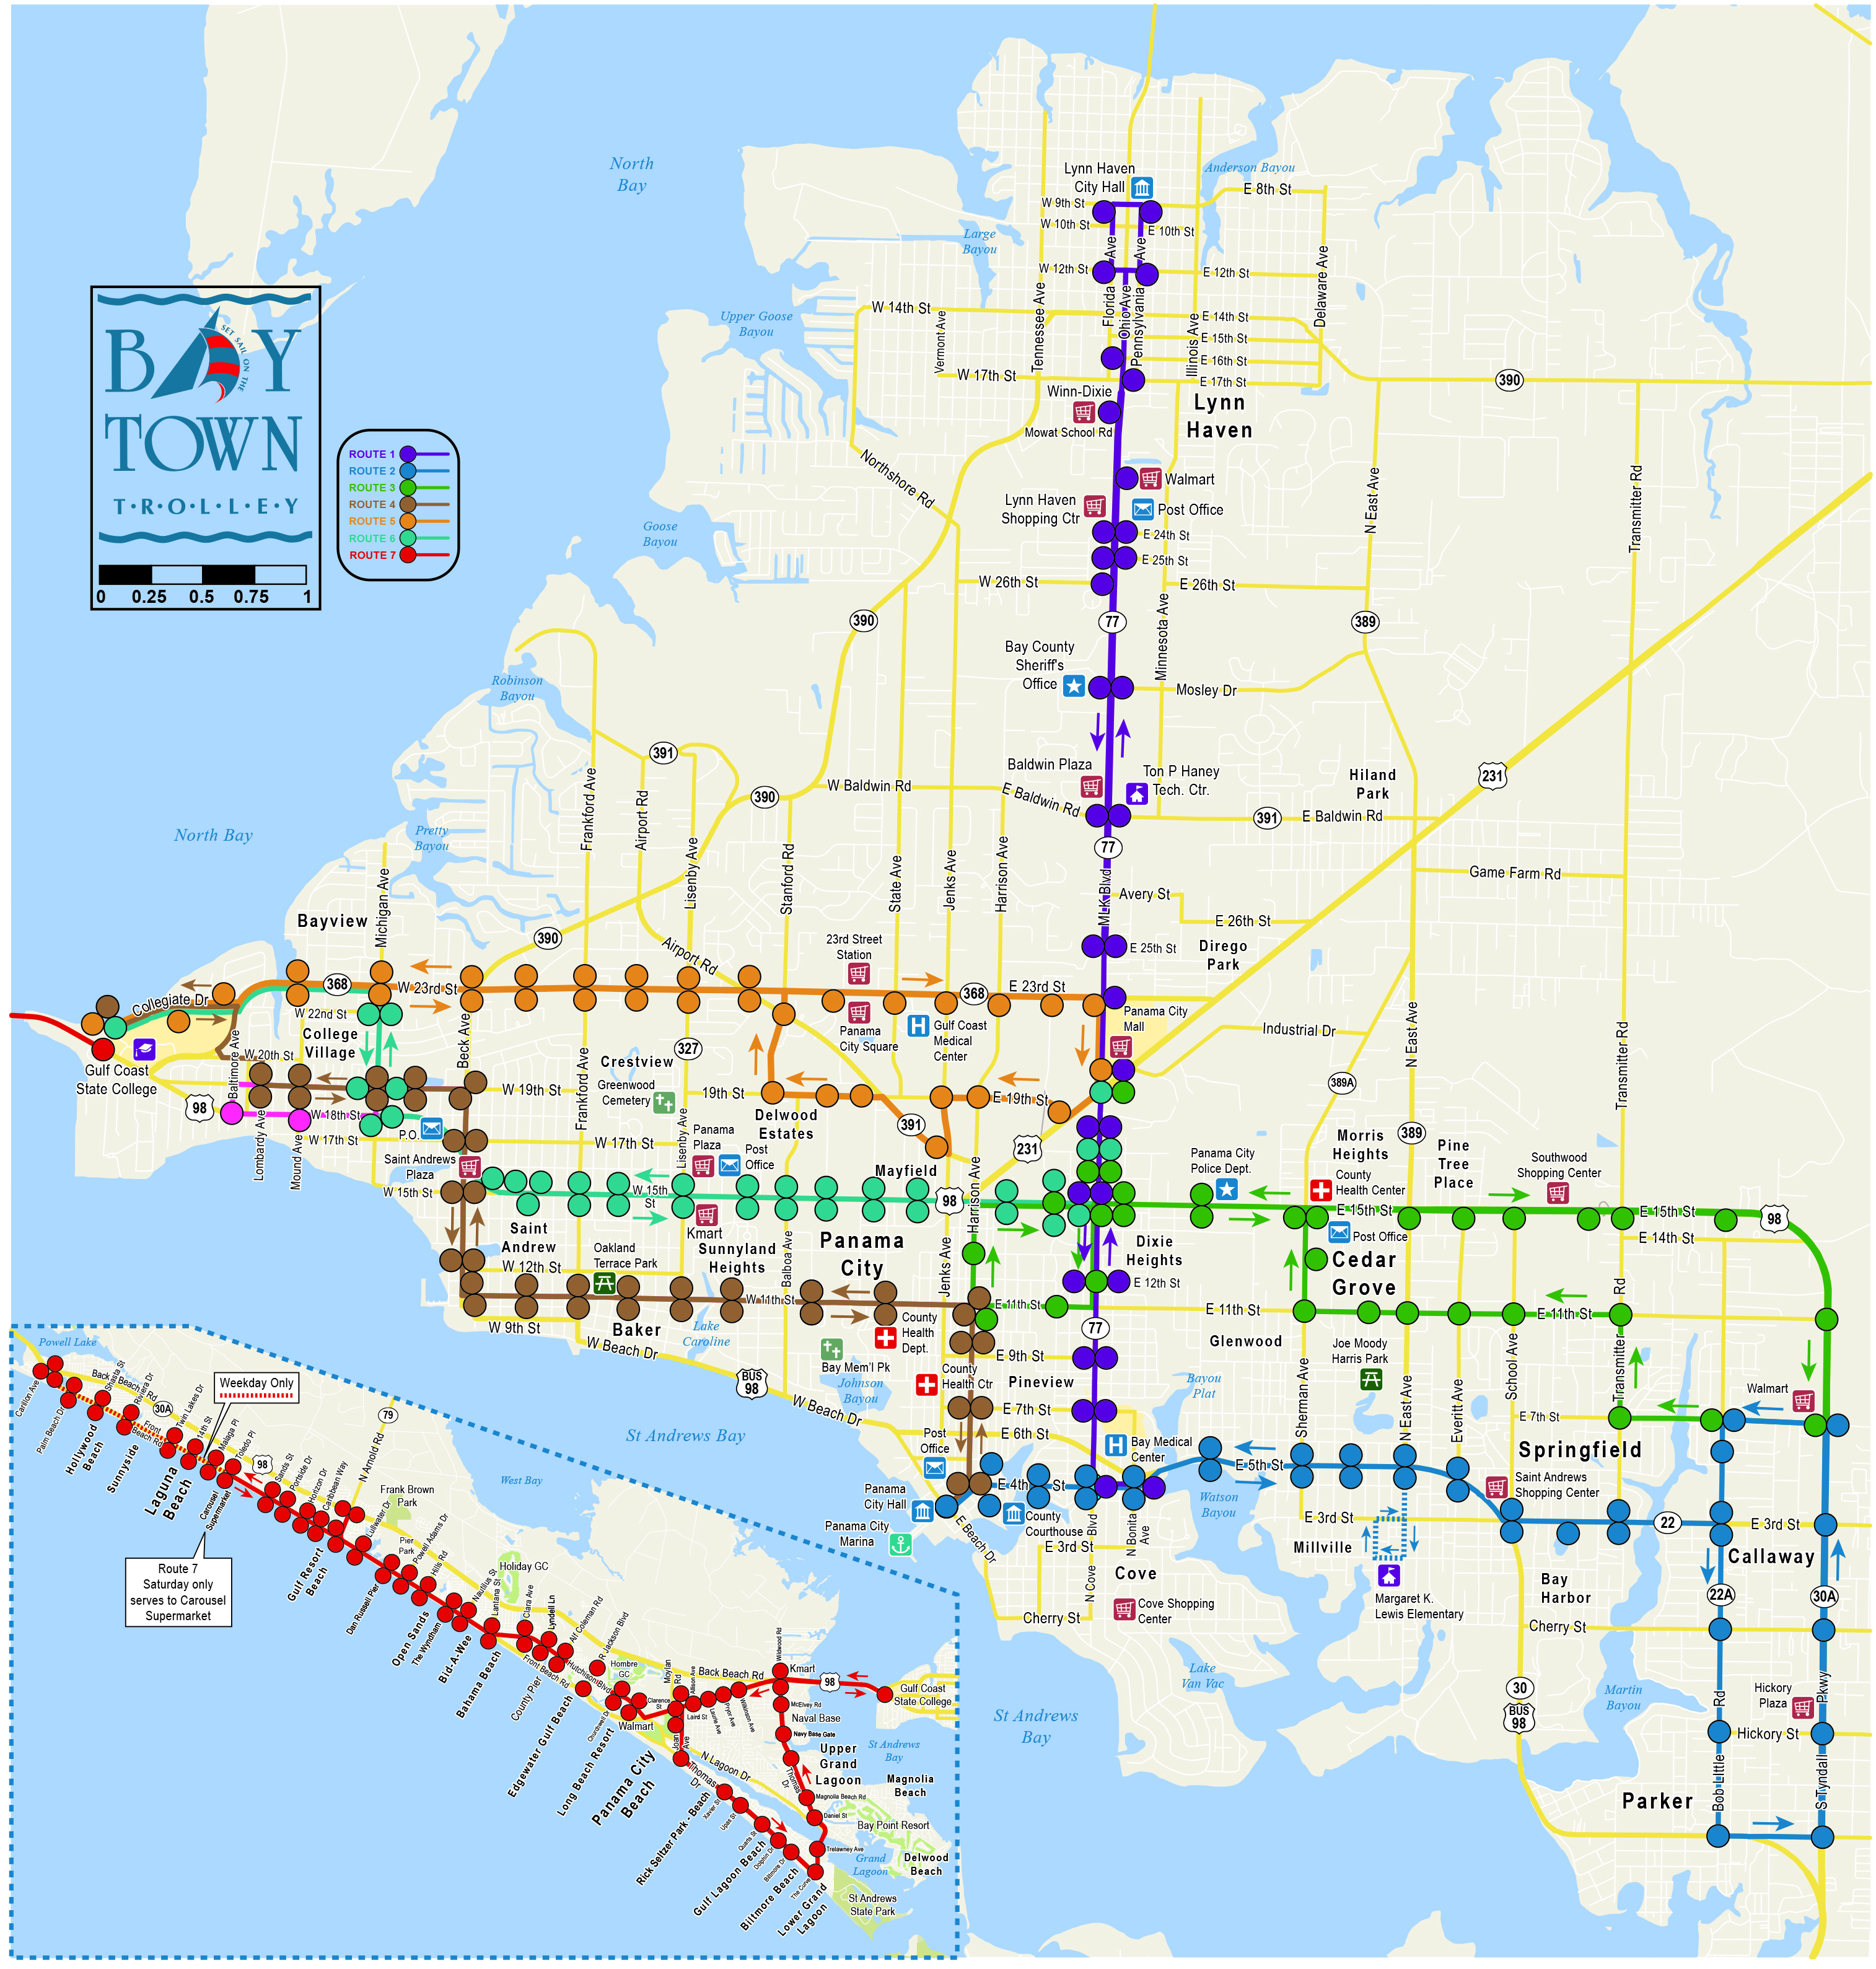 Bay Town Trolley System Map